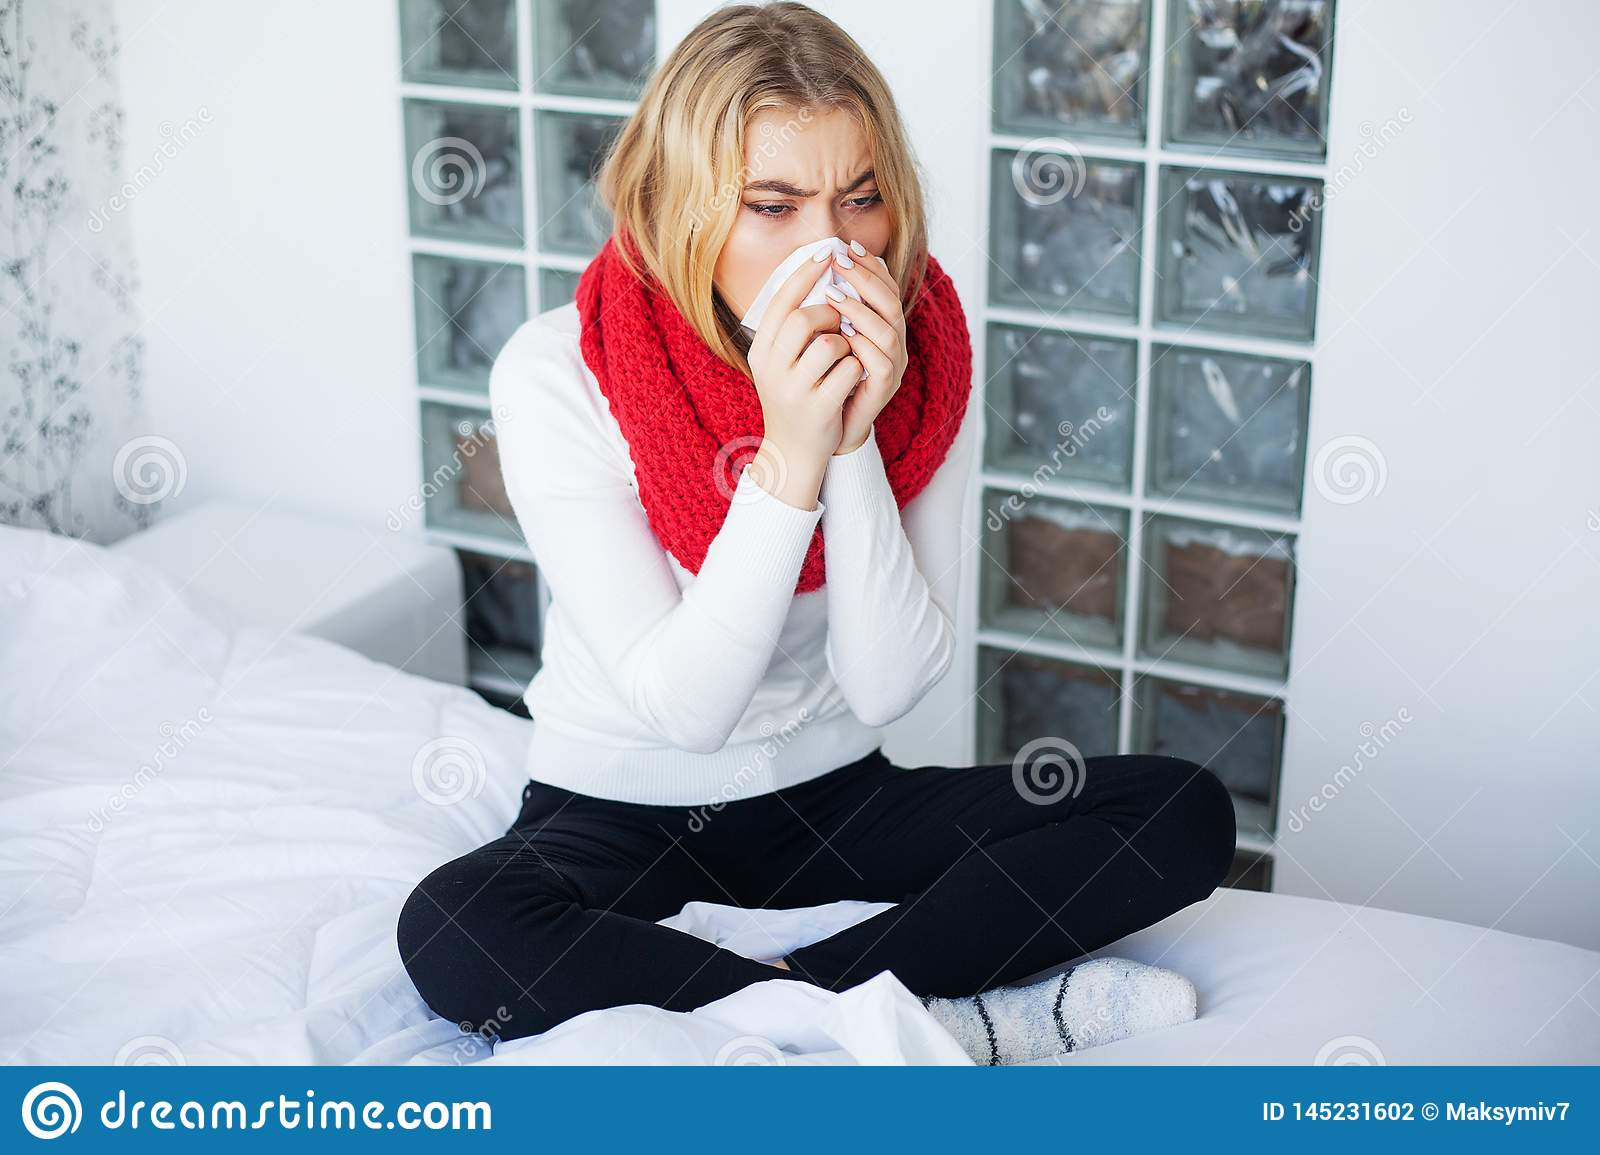 Flu. Woman Suffering From Cold Lying In Bed